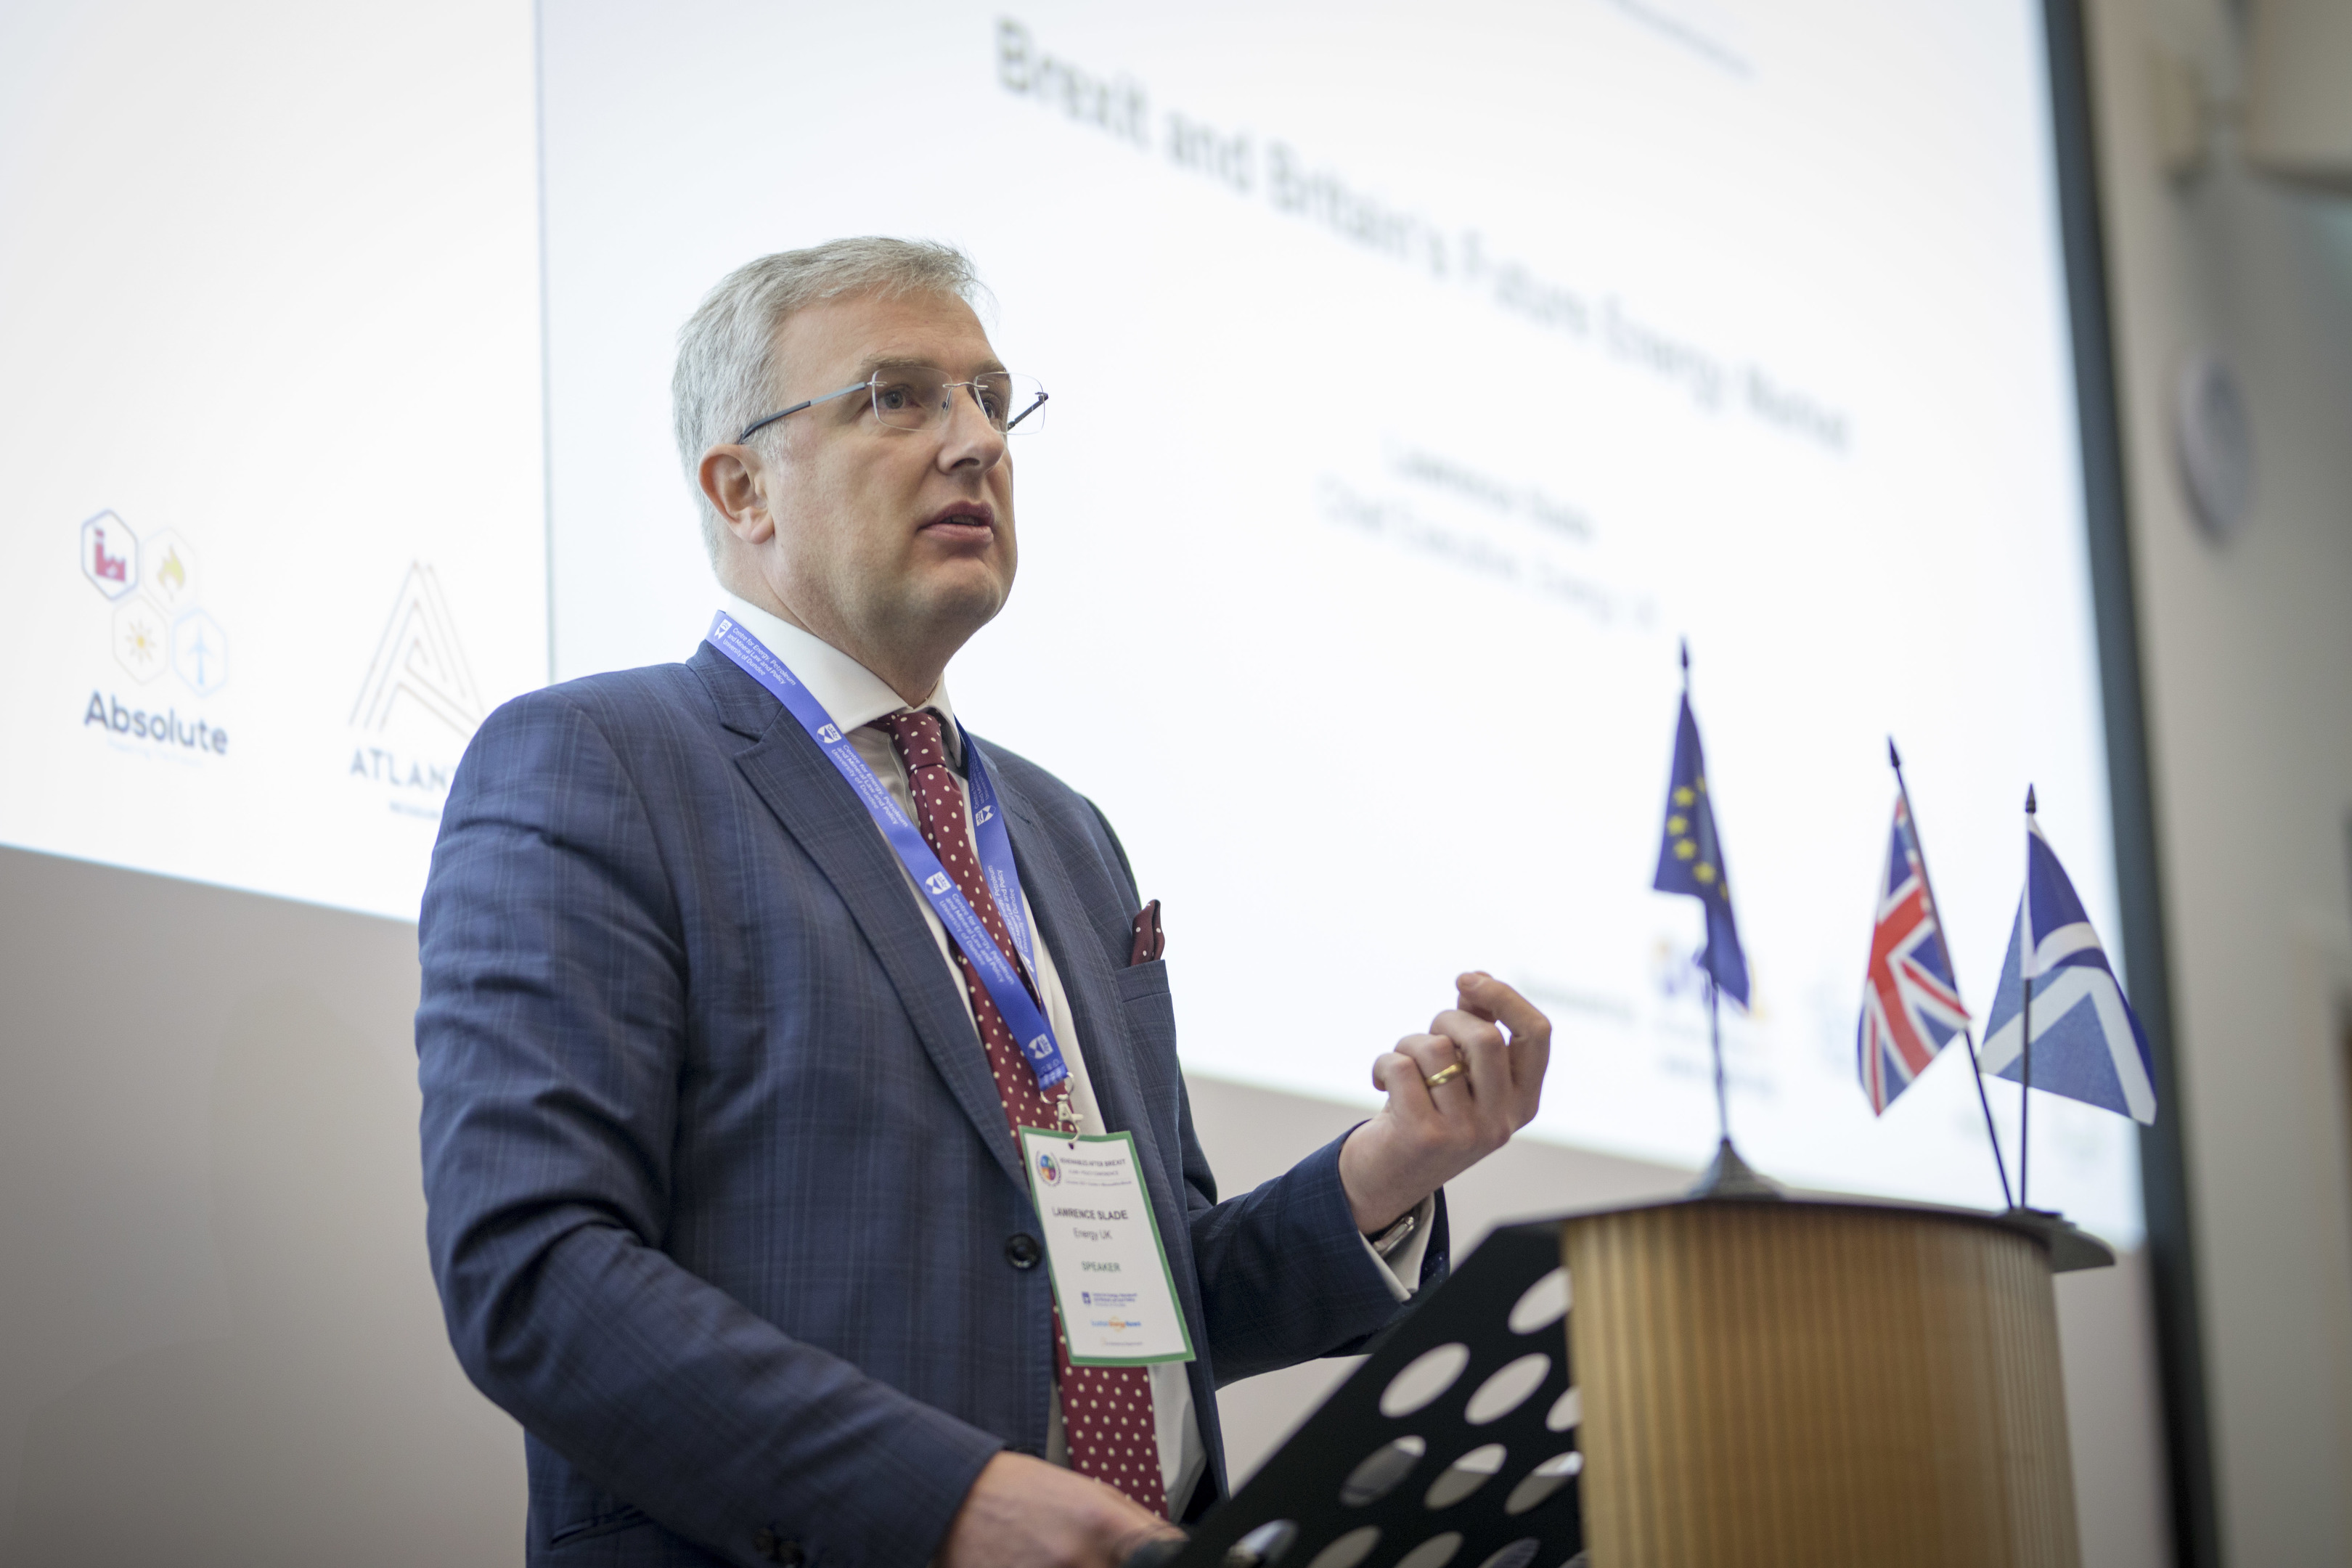 Energy UK chief executive Lawrence Slade. Photography by Dundee University